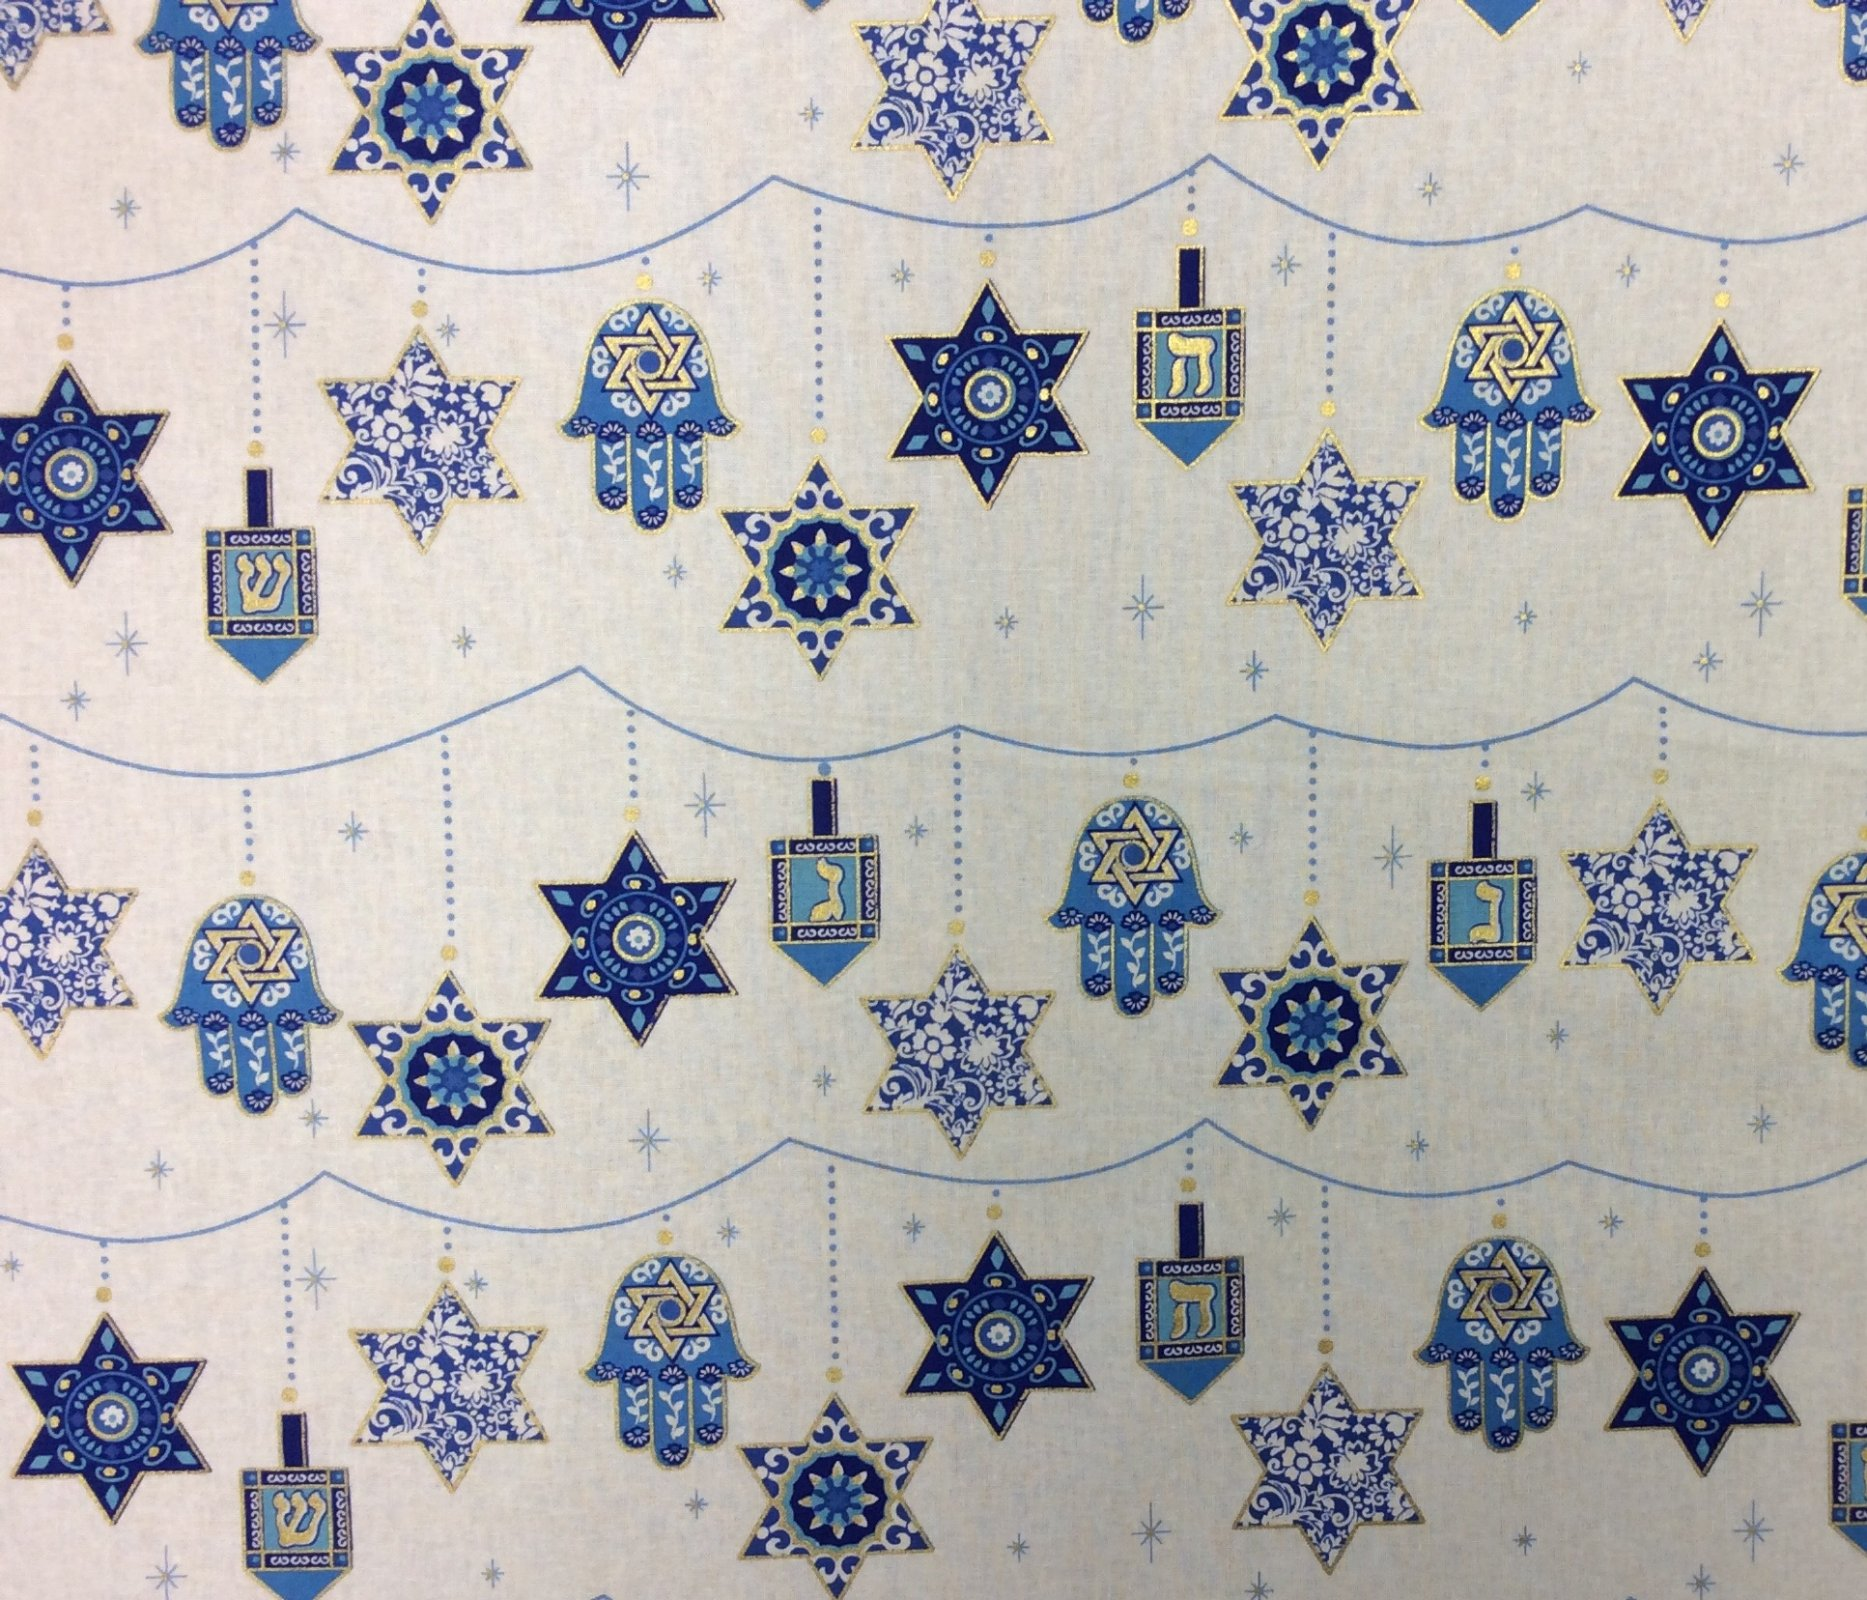 FAT QUARTER! Hanukkah Star of David Chanukah Festival of Lights Holiday Cotton Quilt Fabric RPFMM129